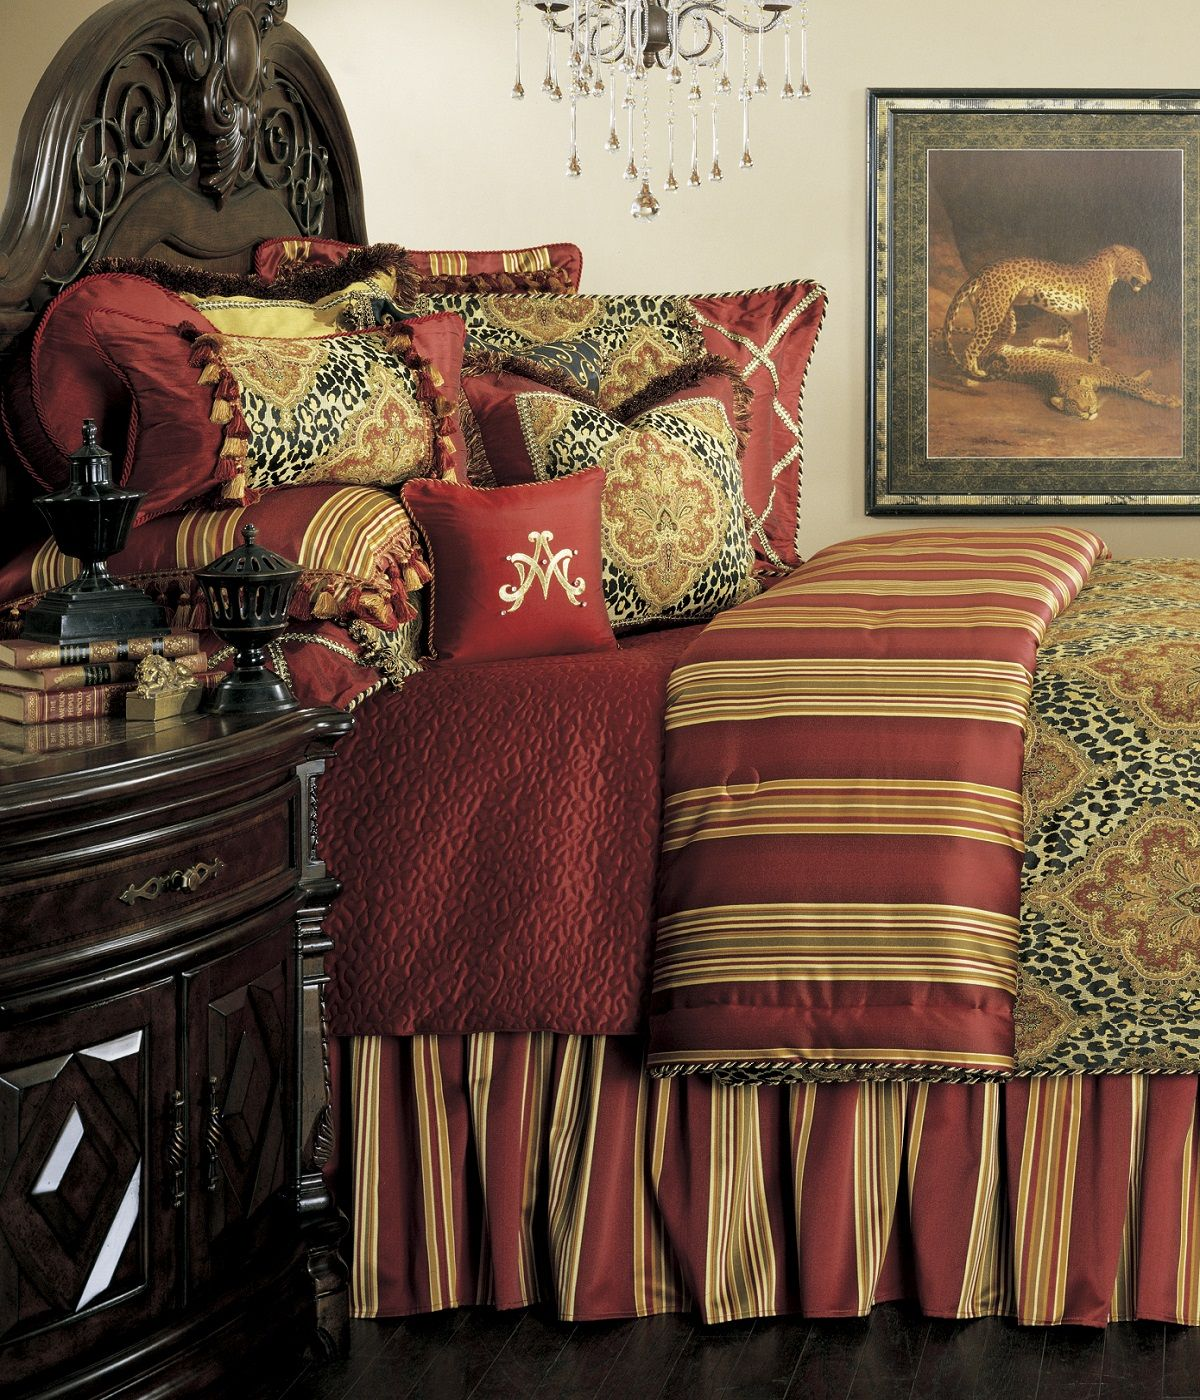 Nobel philippe bed set one s nest custom burgundy red gold damask leopard print luxury tuscan villa